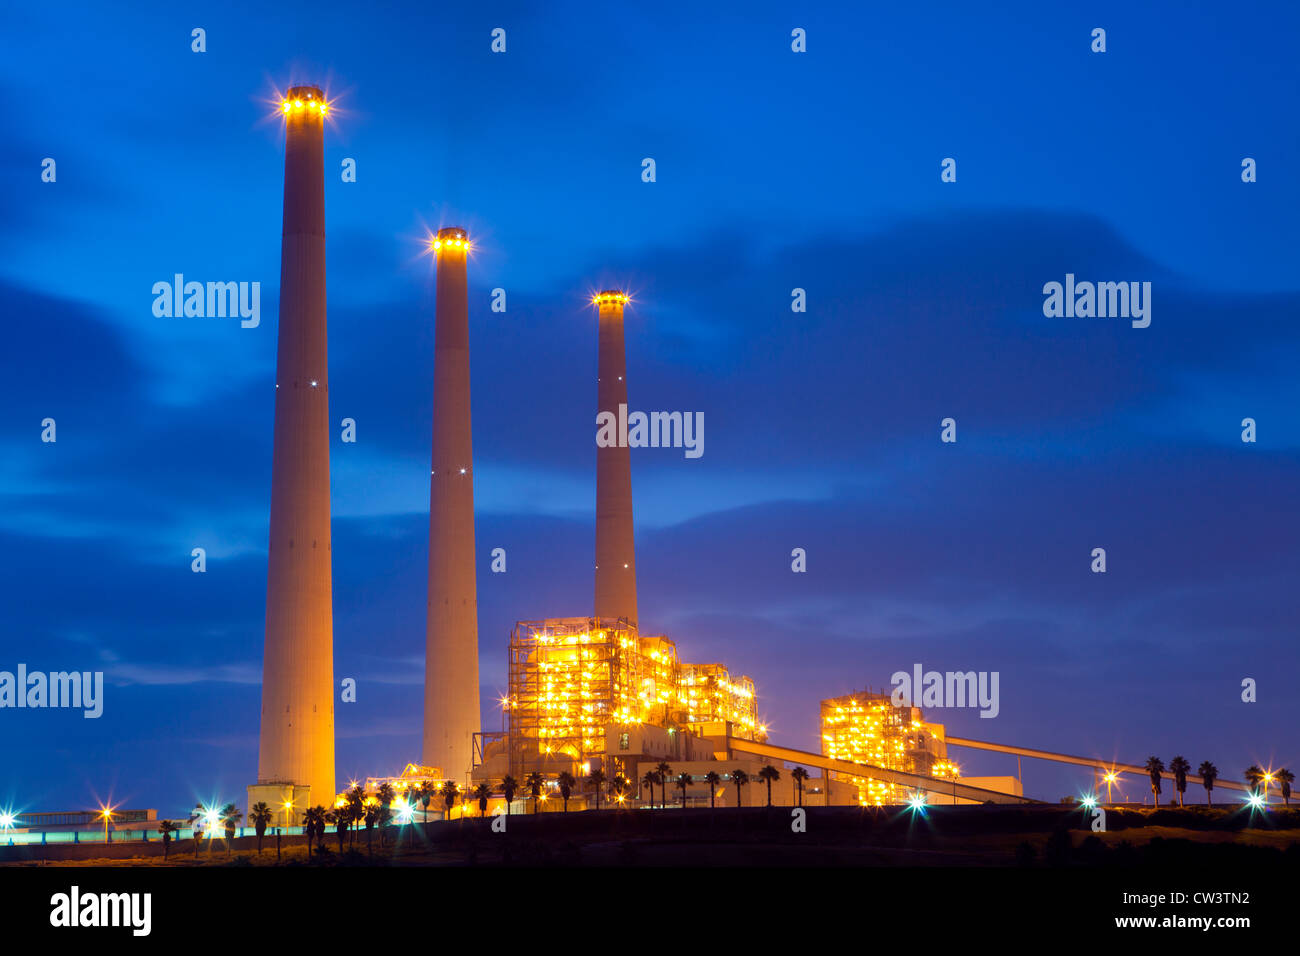 Power plant at night - Stock Image